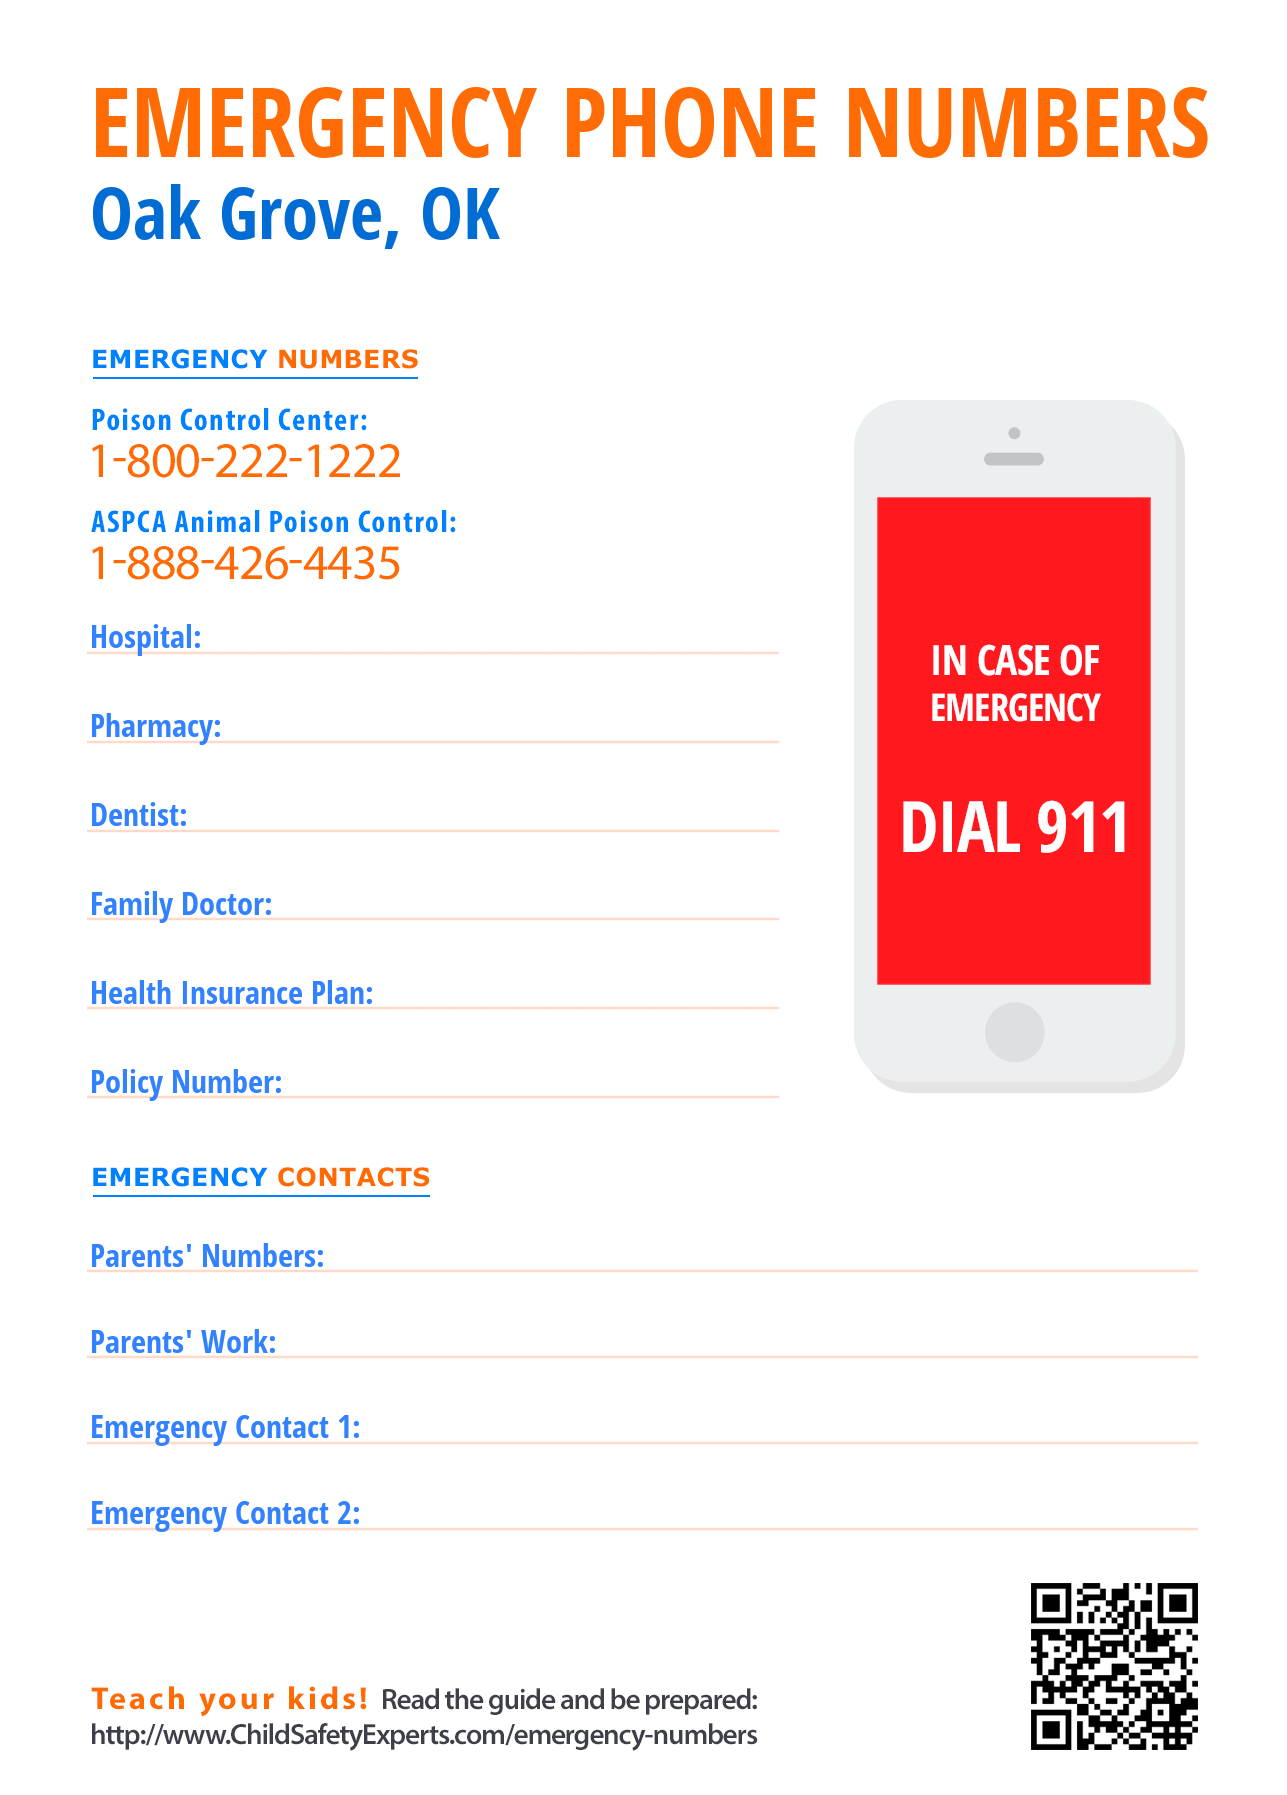 Important emergency phone numbers in Oak Grove, Oklahoma